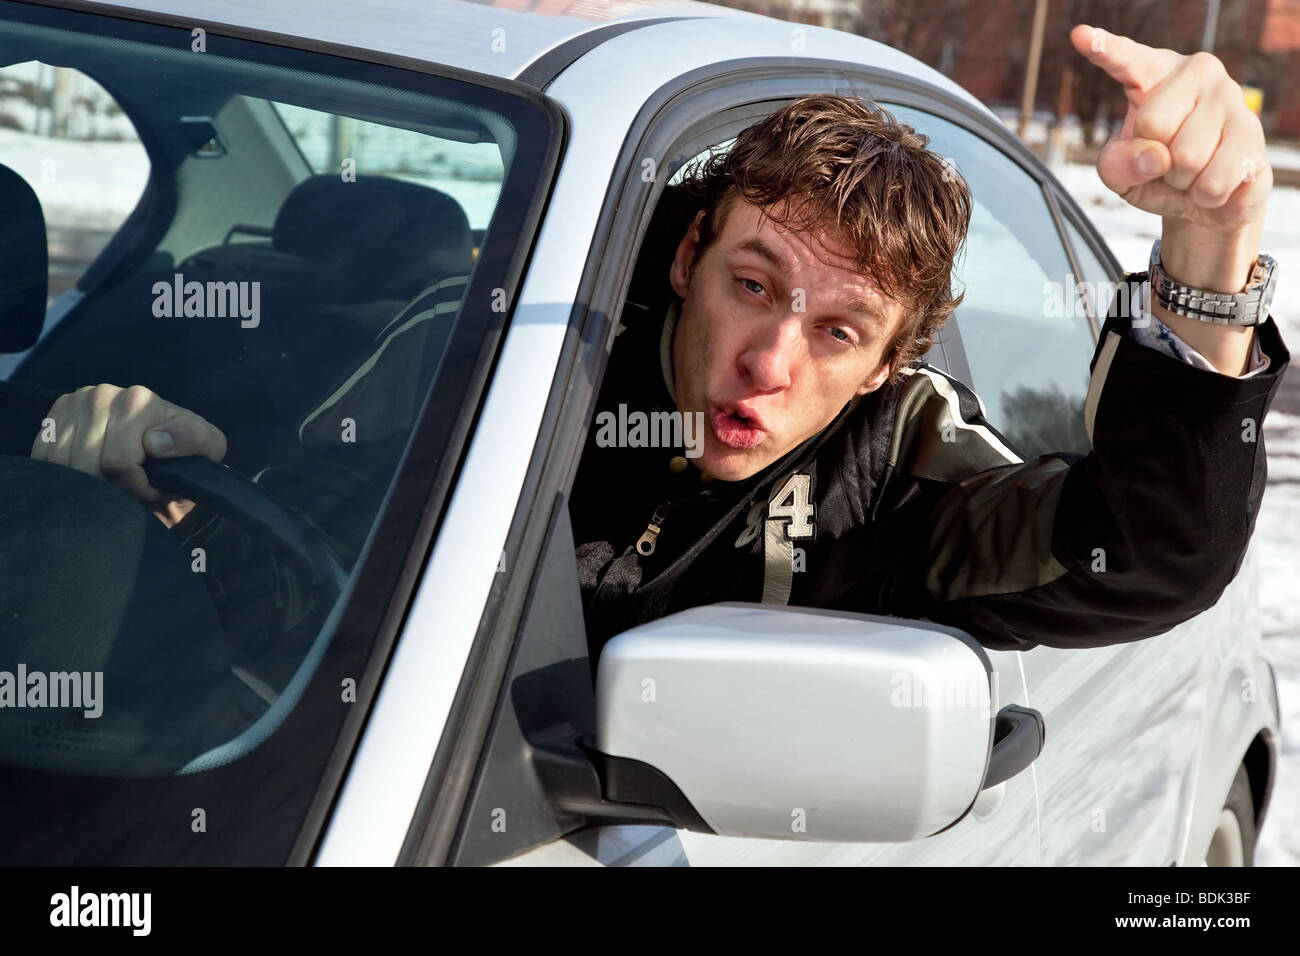 An Aggressive Driver Is A Person Who Drives